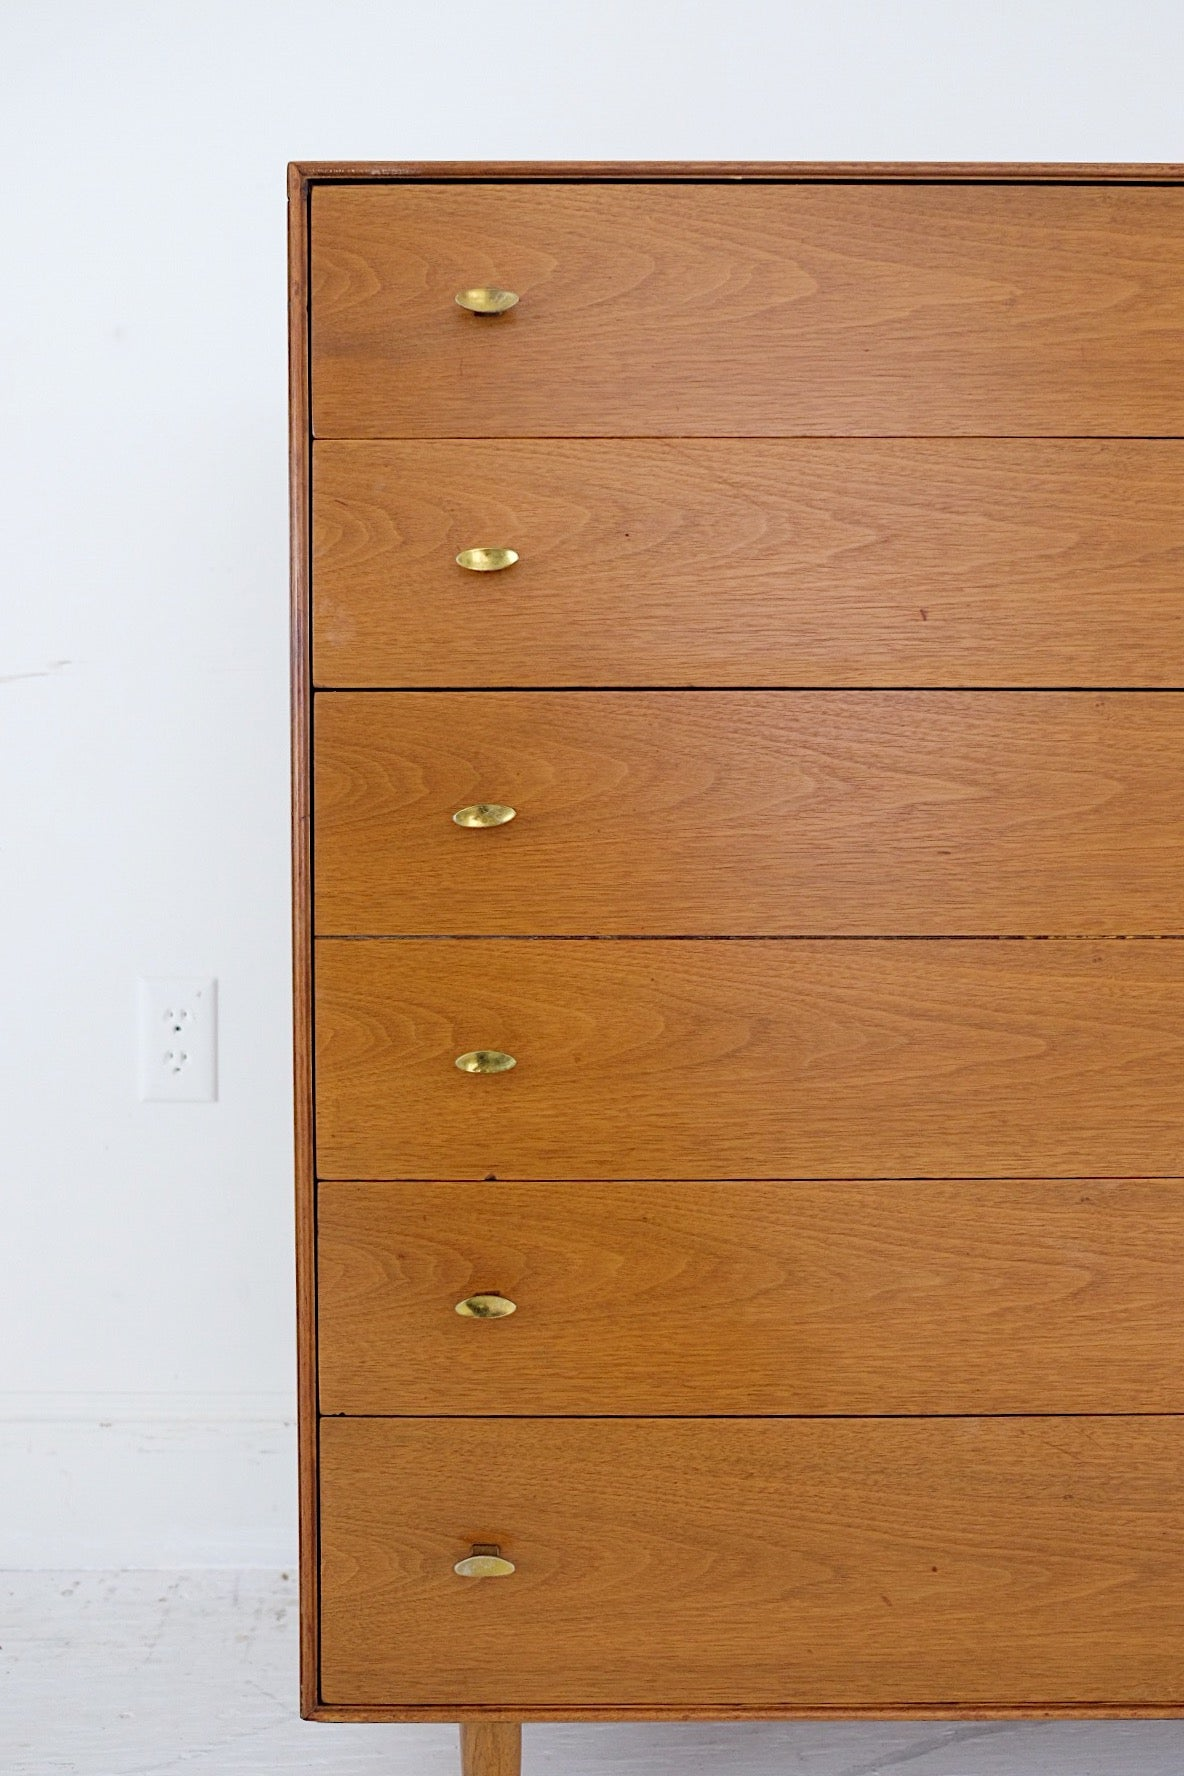 #2 RWAY Tall Dresser Five Drawer Mid Century Modern Brass Pulls Steel Framing